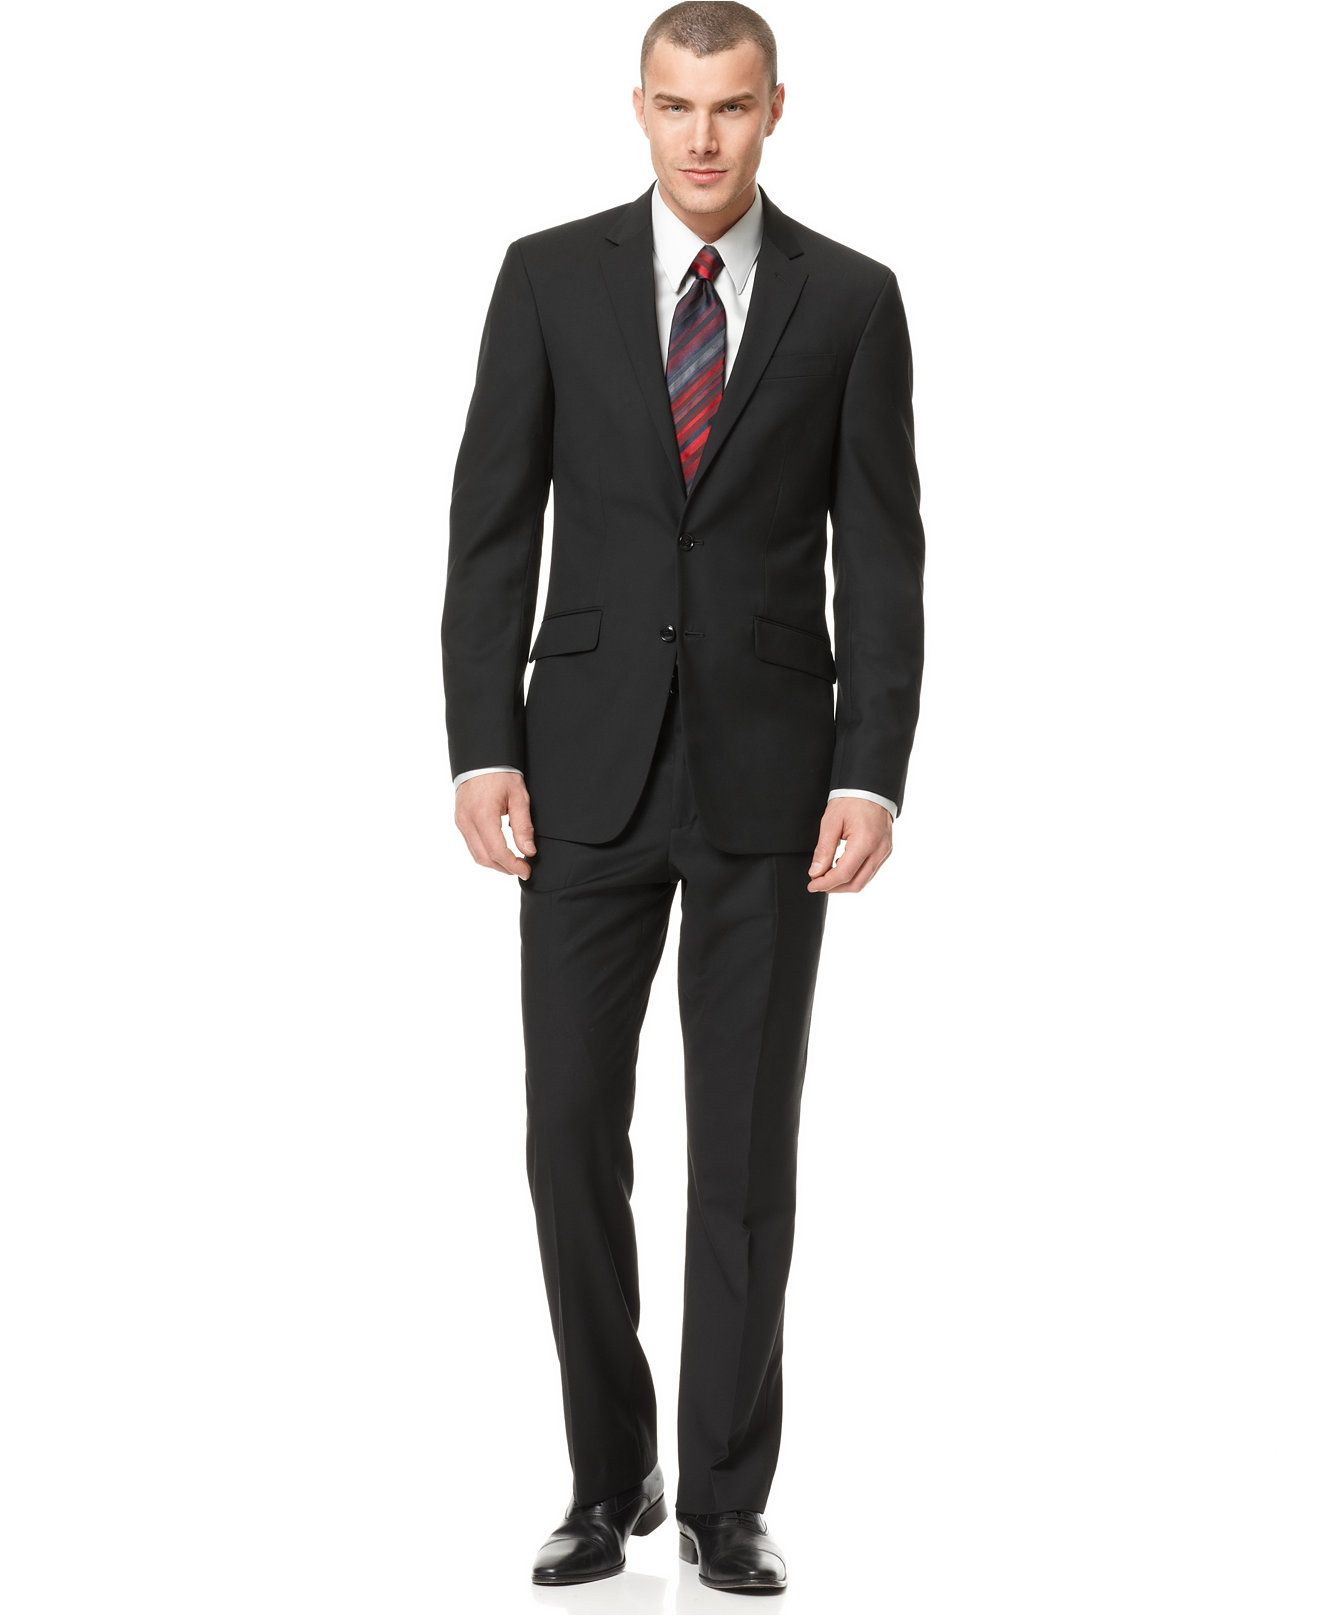 Kenneth Cole Reaction Black Solid Slim-Fit Suit - Suits   Suit Separates -  Men - Macy s c7ba14a9a